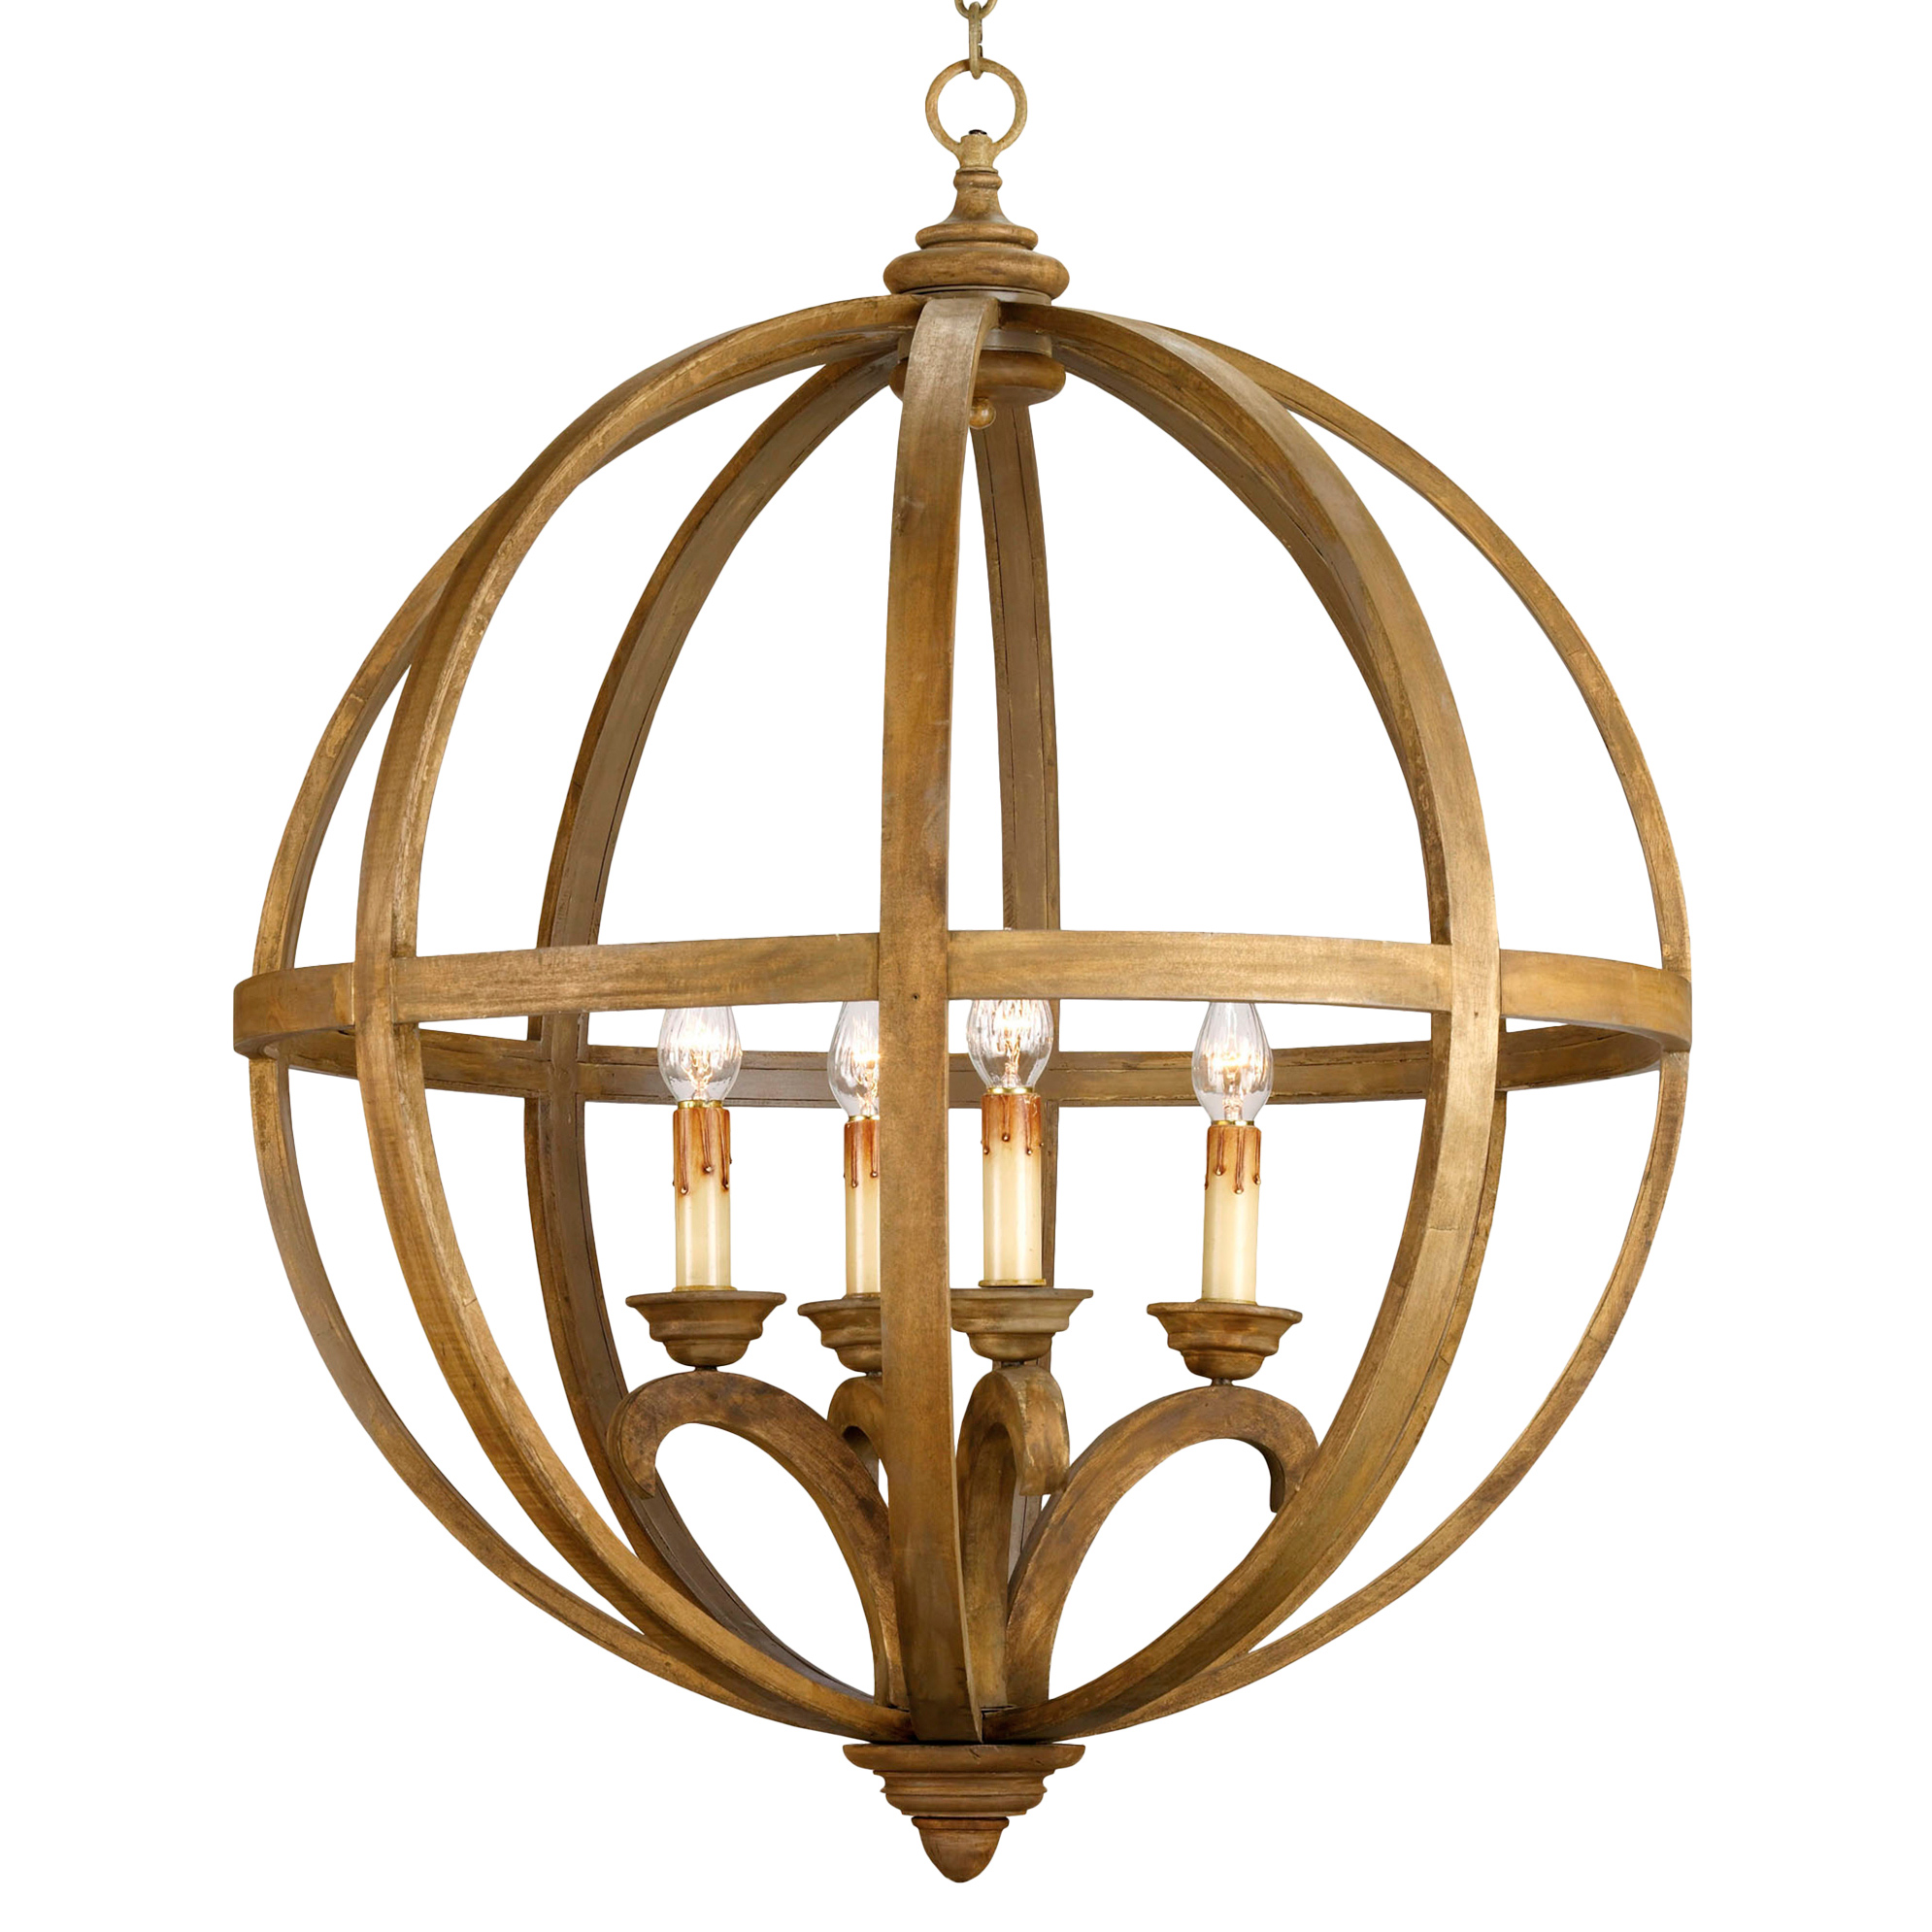 Drexel Orb Curved Wood Round Pendant Chandelier Lamp - 32 Inch